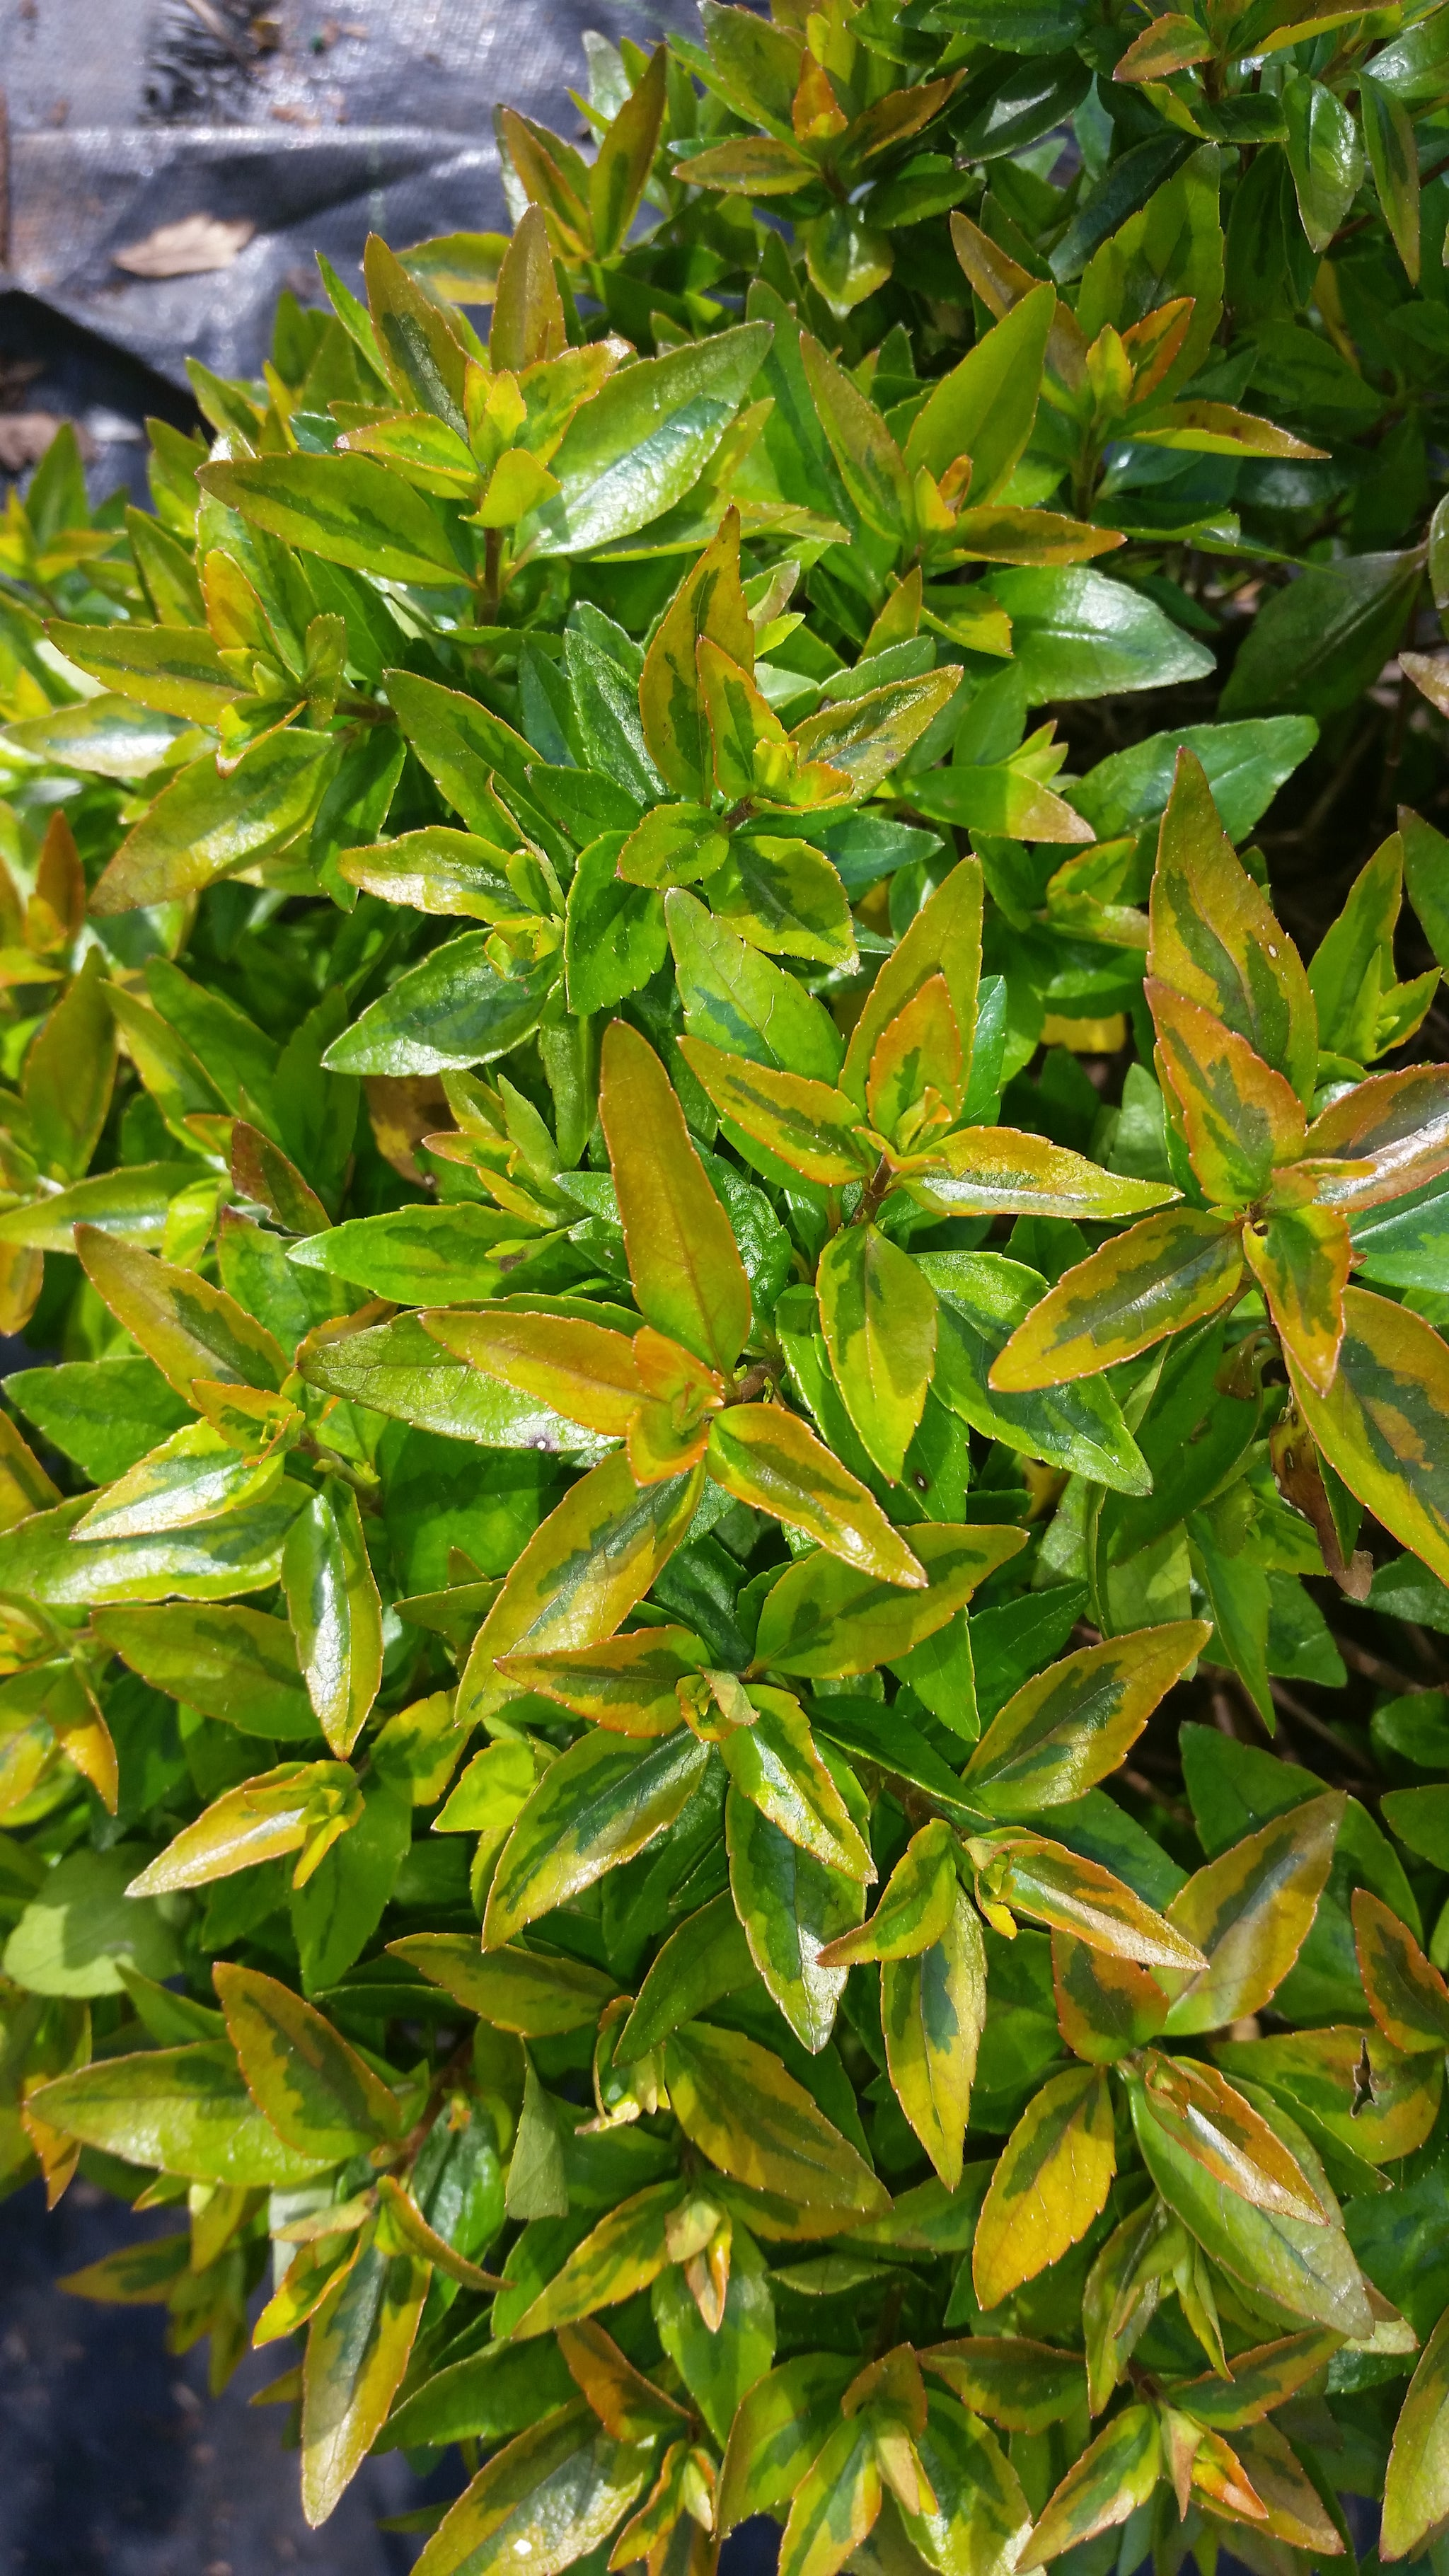 Abelia SUPER GOLD- gorgeous dwarf and compact Evergreen with Very Showy Leaves, Bloom Time: May to September, White Showy, Fragrant blooms